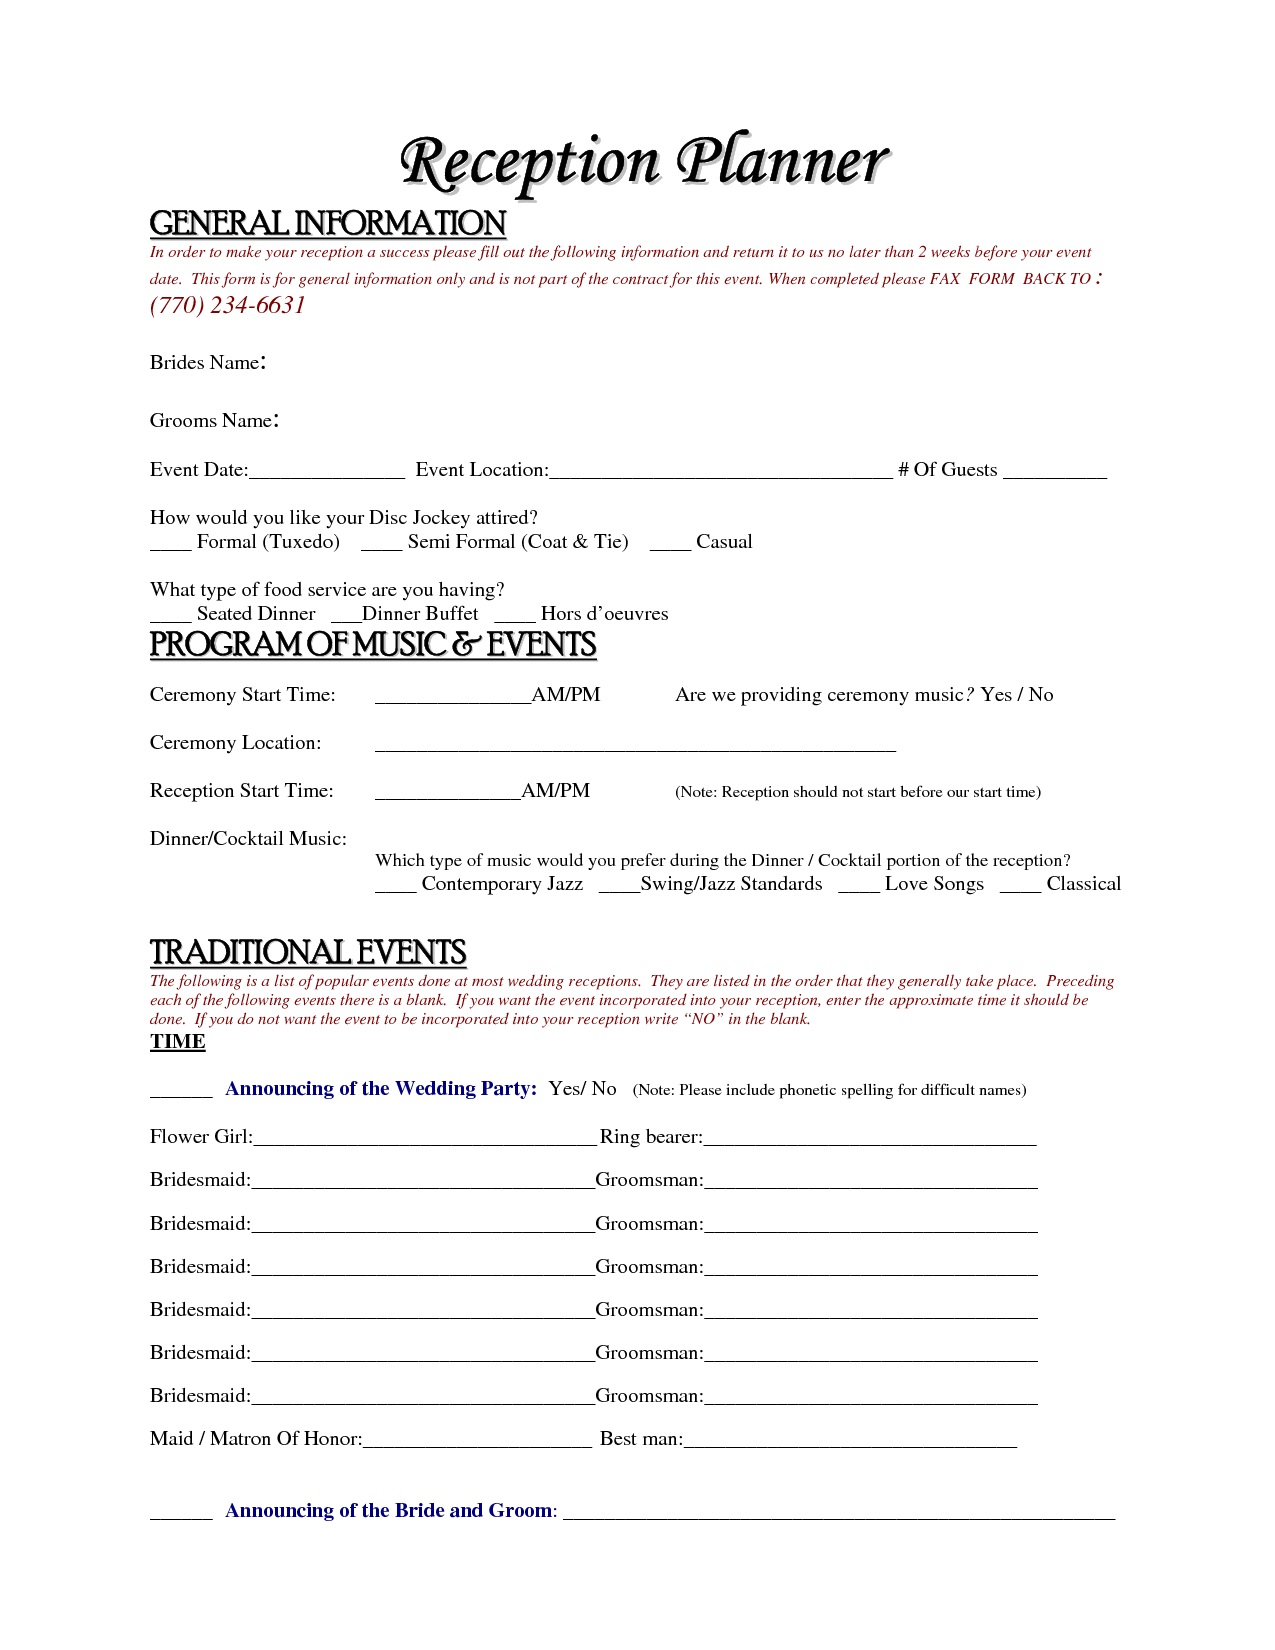 free event planner contract templates